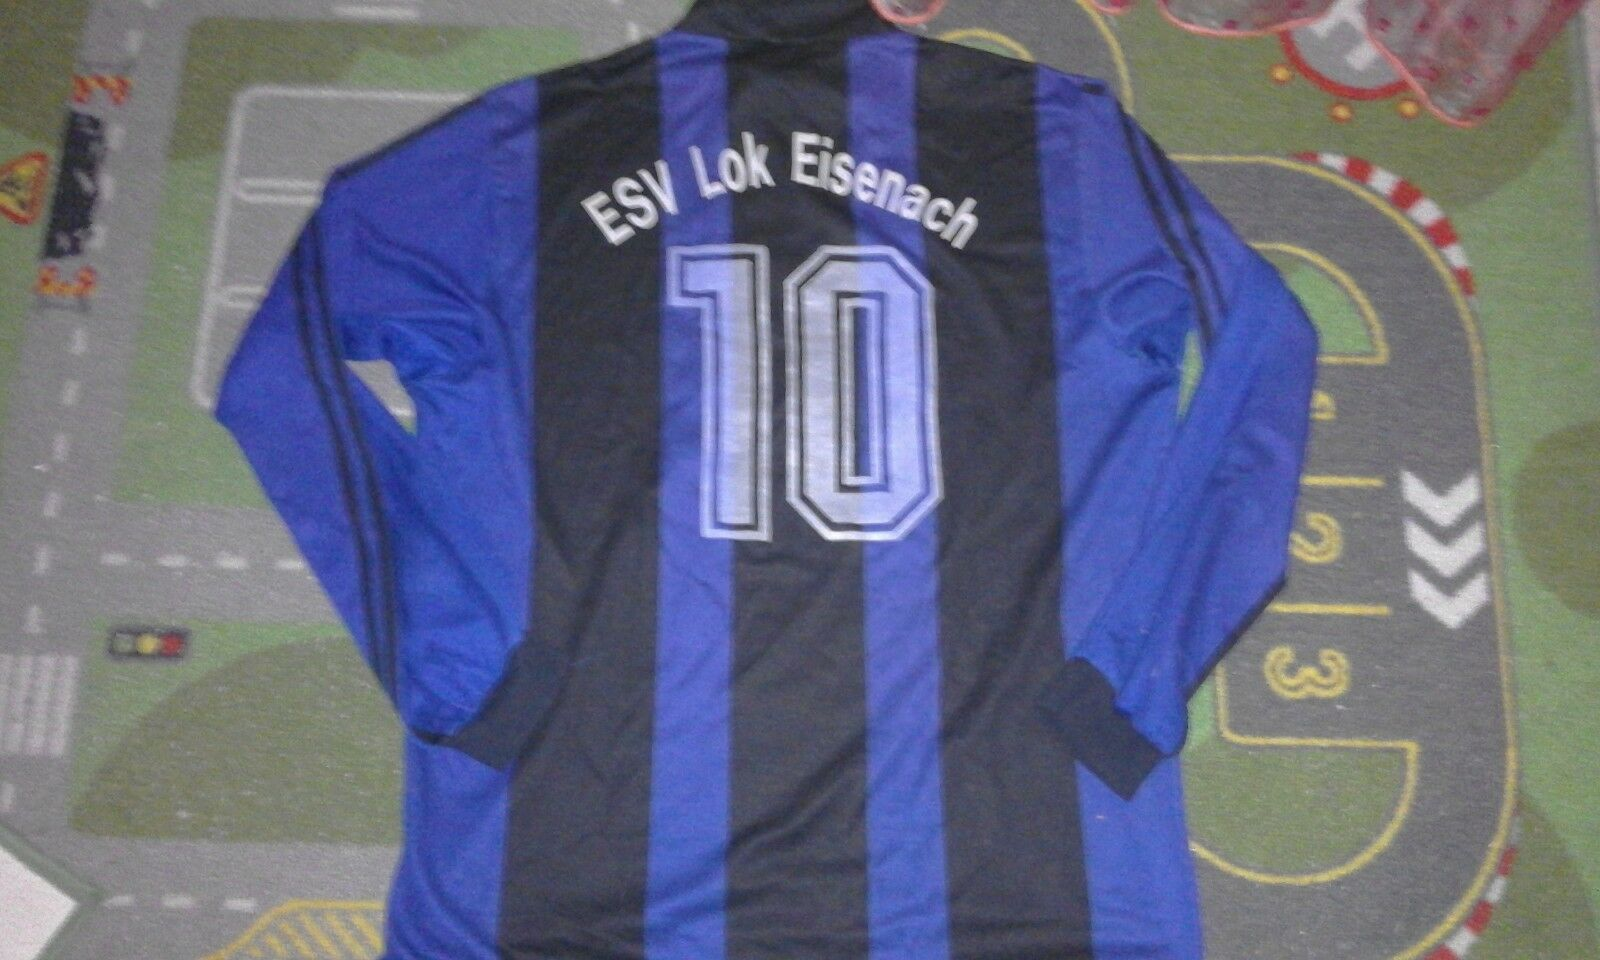 Esv Lokomotiv Eisenach football shirt match worn fussball trikot Jersey adidas